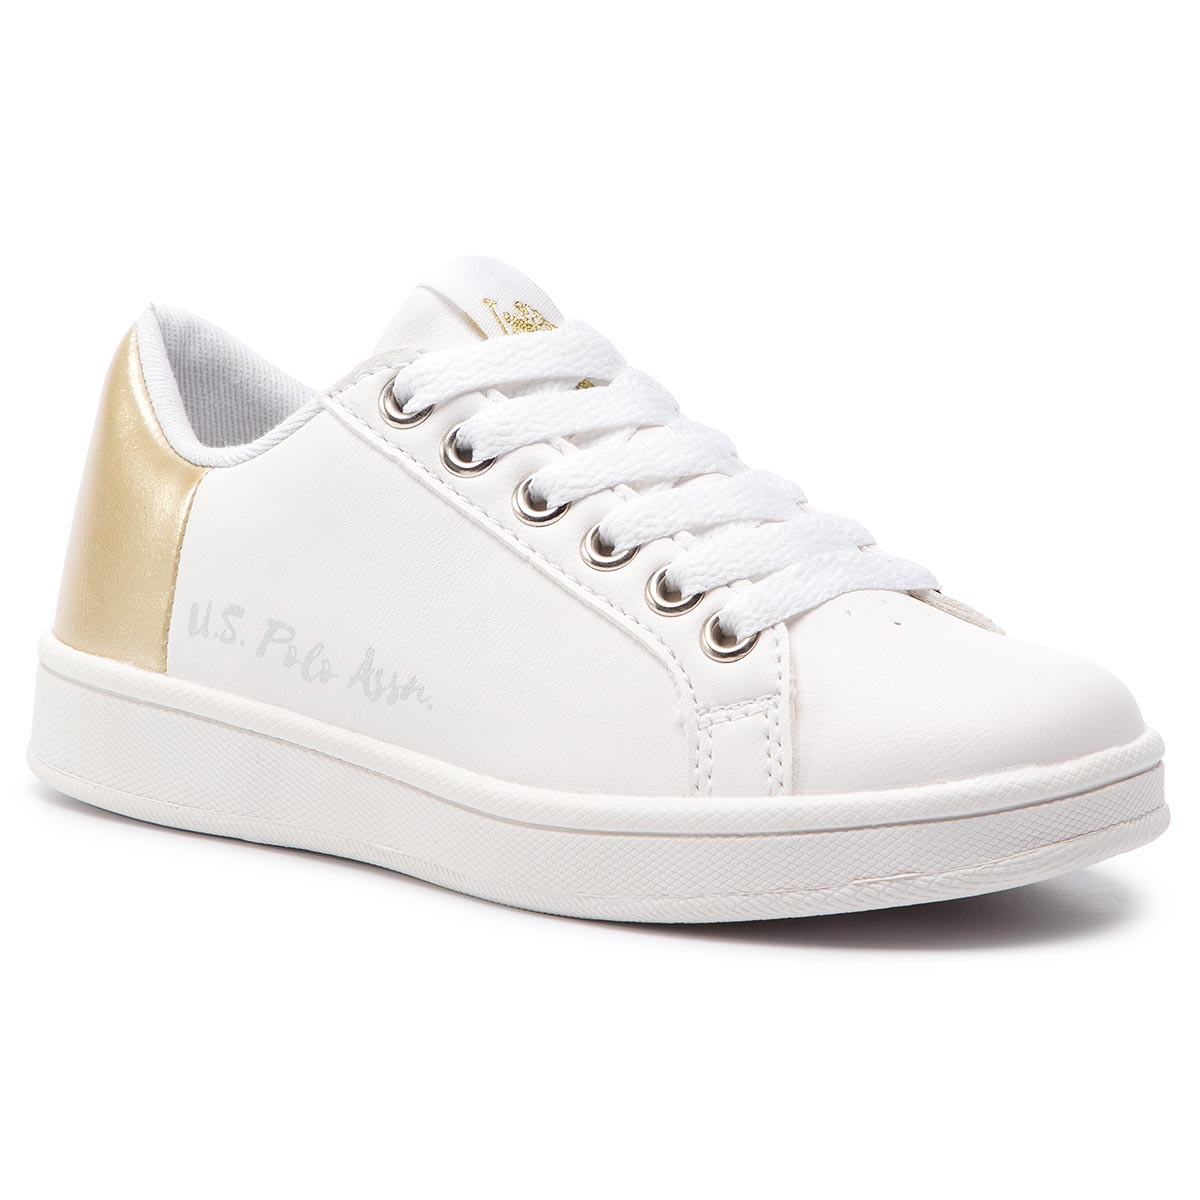 Sneakersy U.S. POLO ASSN. - Ginevra ECROK4114S9/Y1 Whi/Gold